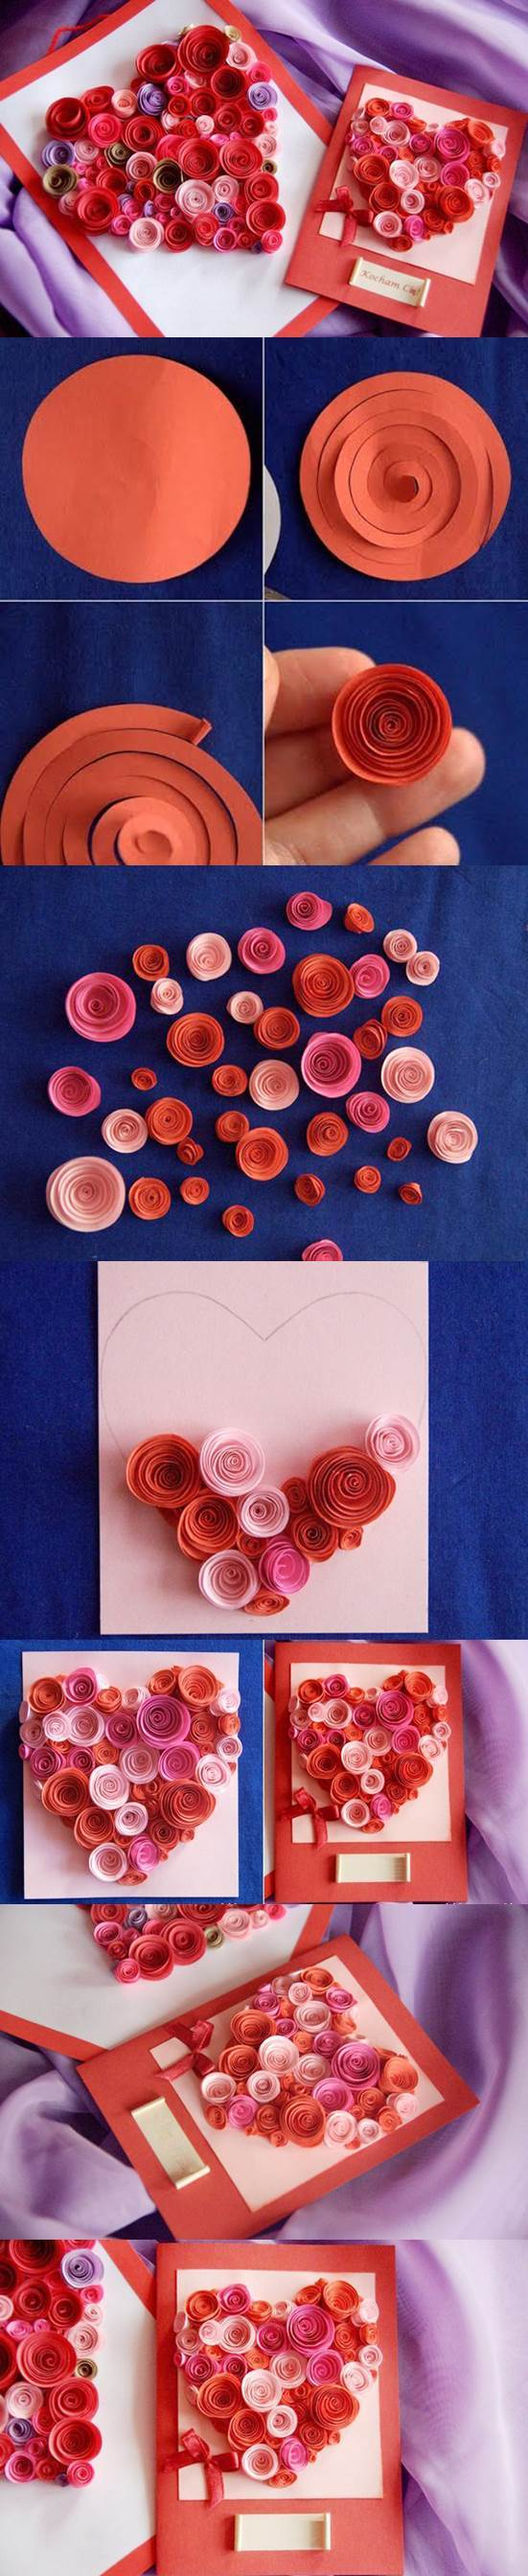 DIY Paper Swirls Heart Shaped Card 2